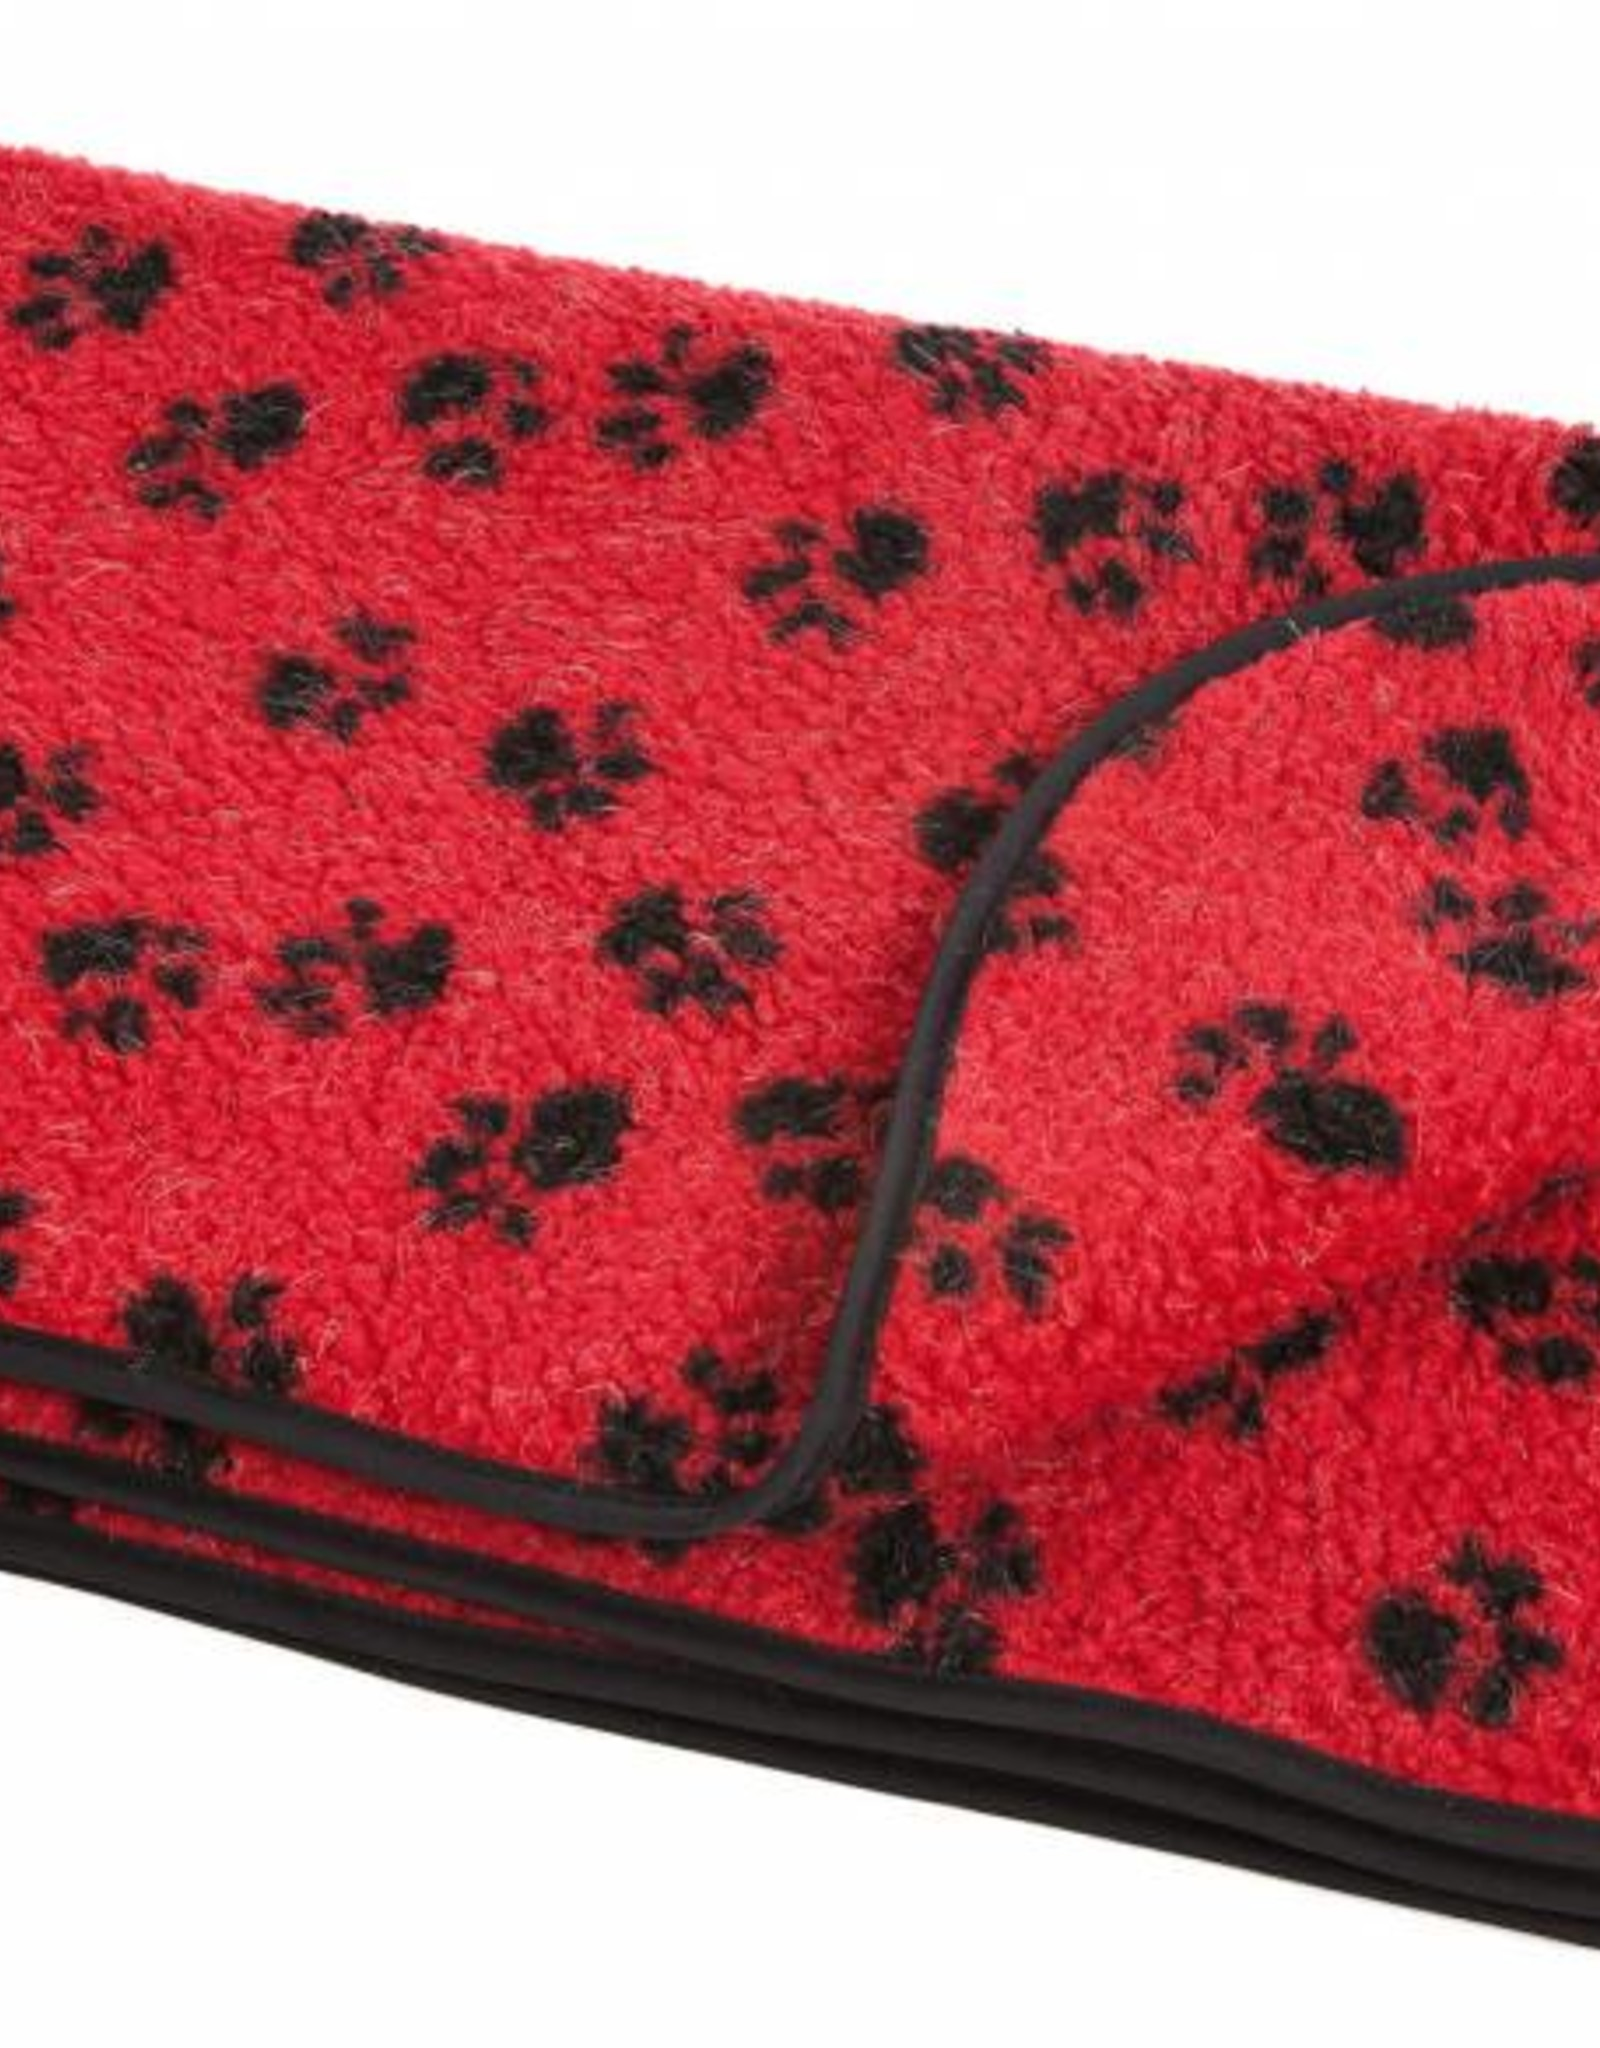 Pets & Leisure Double Thickness Sherpa Fleece Pet Blanket, Red & Black